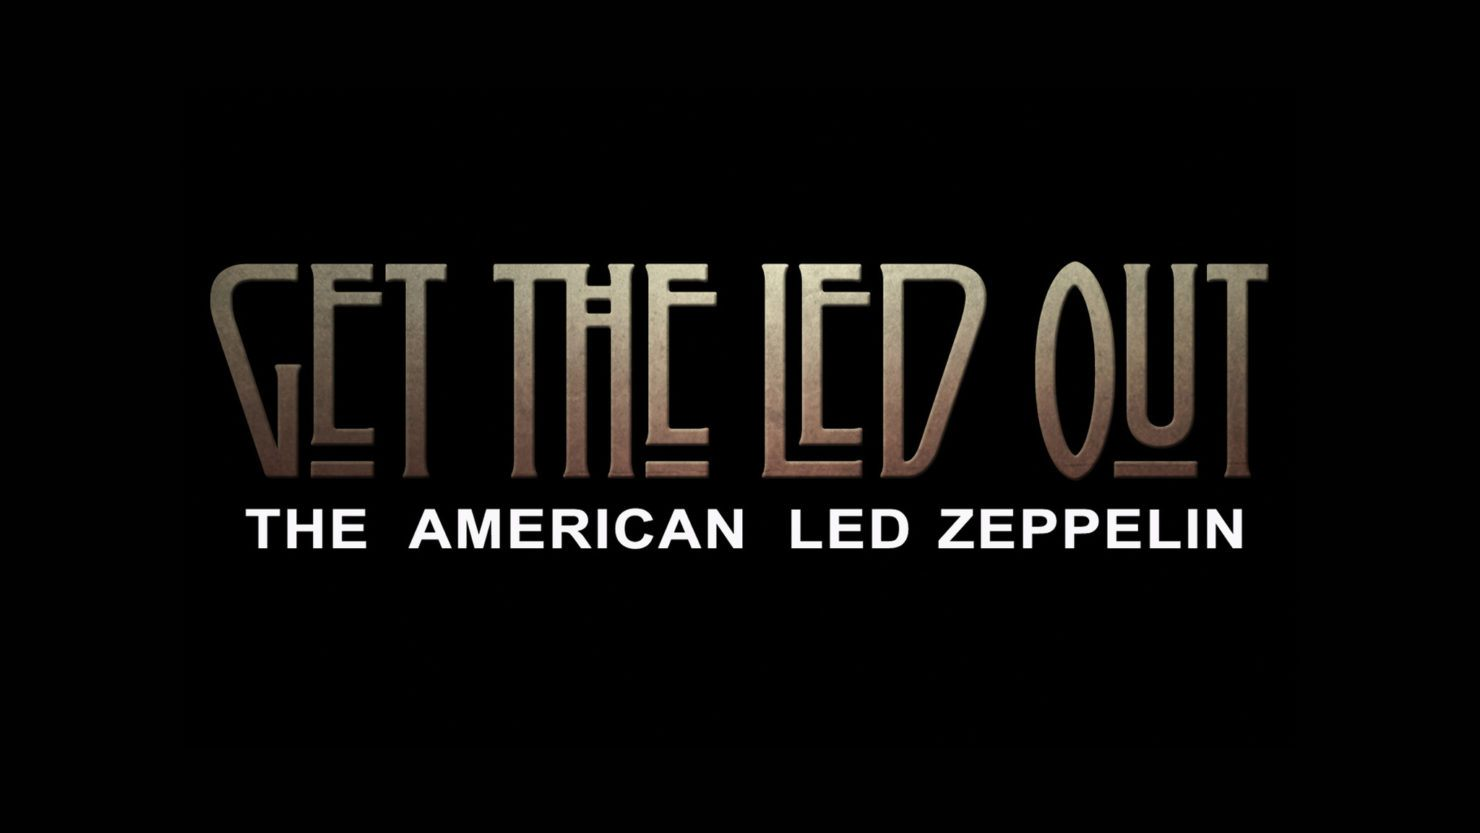 Get The Led Out at Veterans Memorial Civic Center - Feb 13, 2020